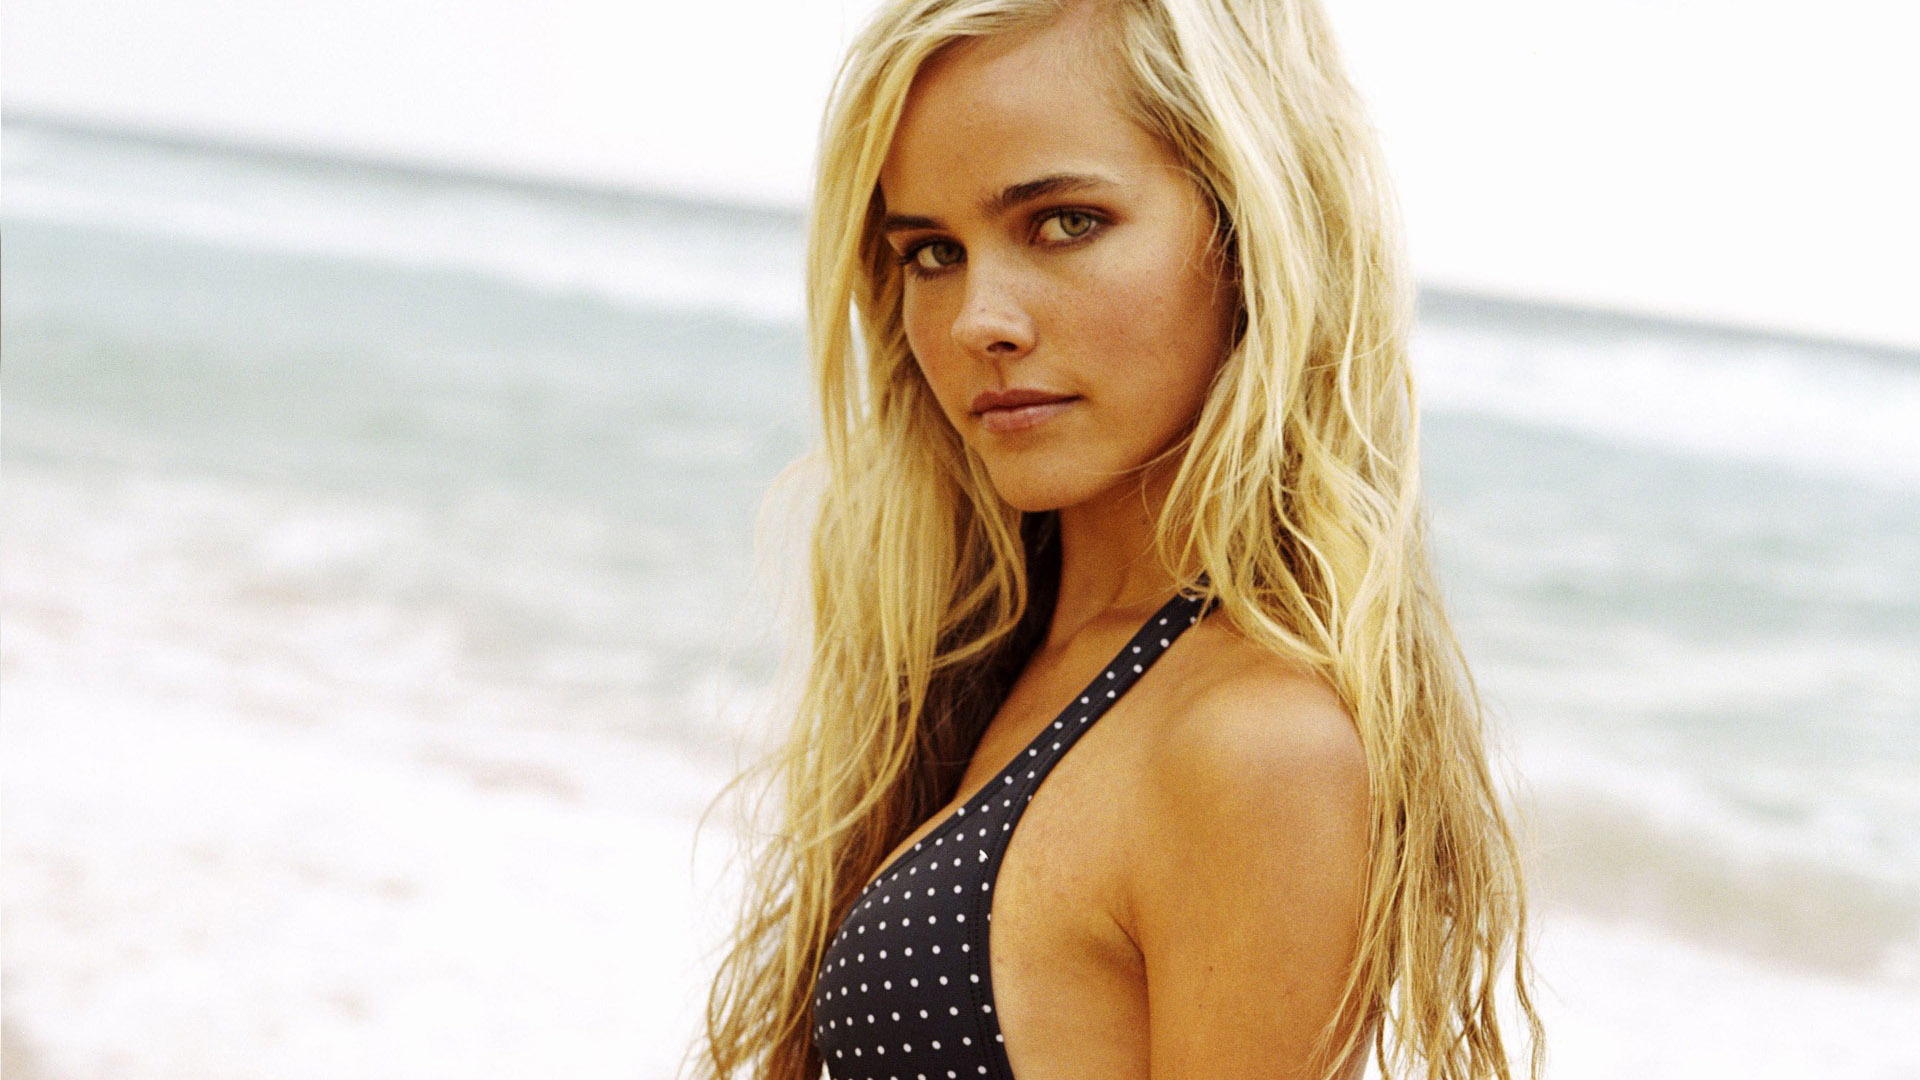 Isabel lucas careful what you wish for 02 - 2 part 7